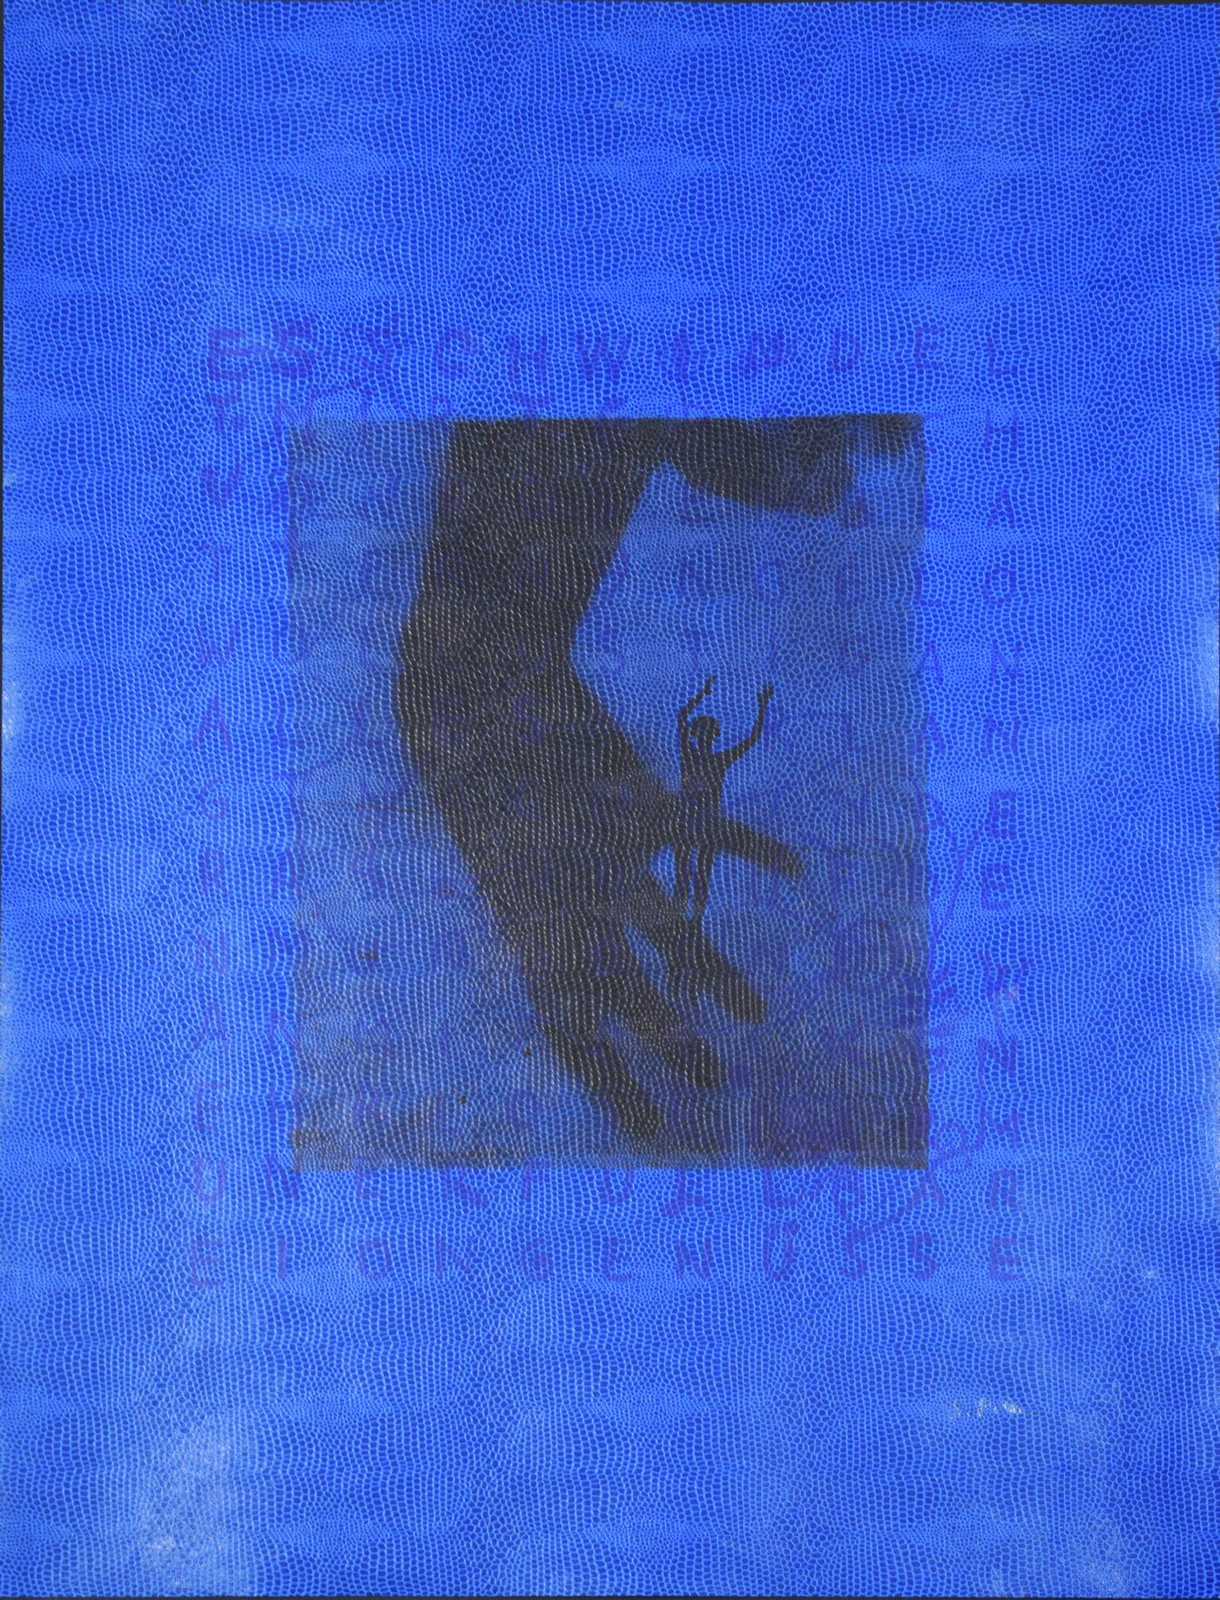 1973, offset print on paper, edition 320, 45,5 x 62,8 cm